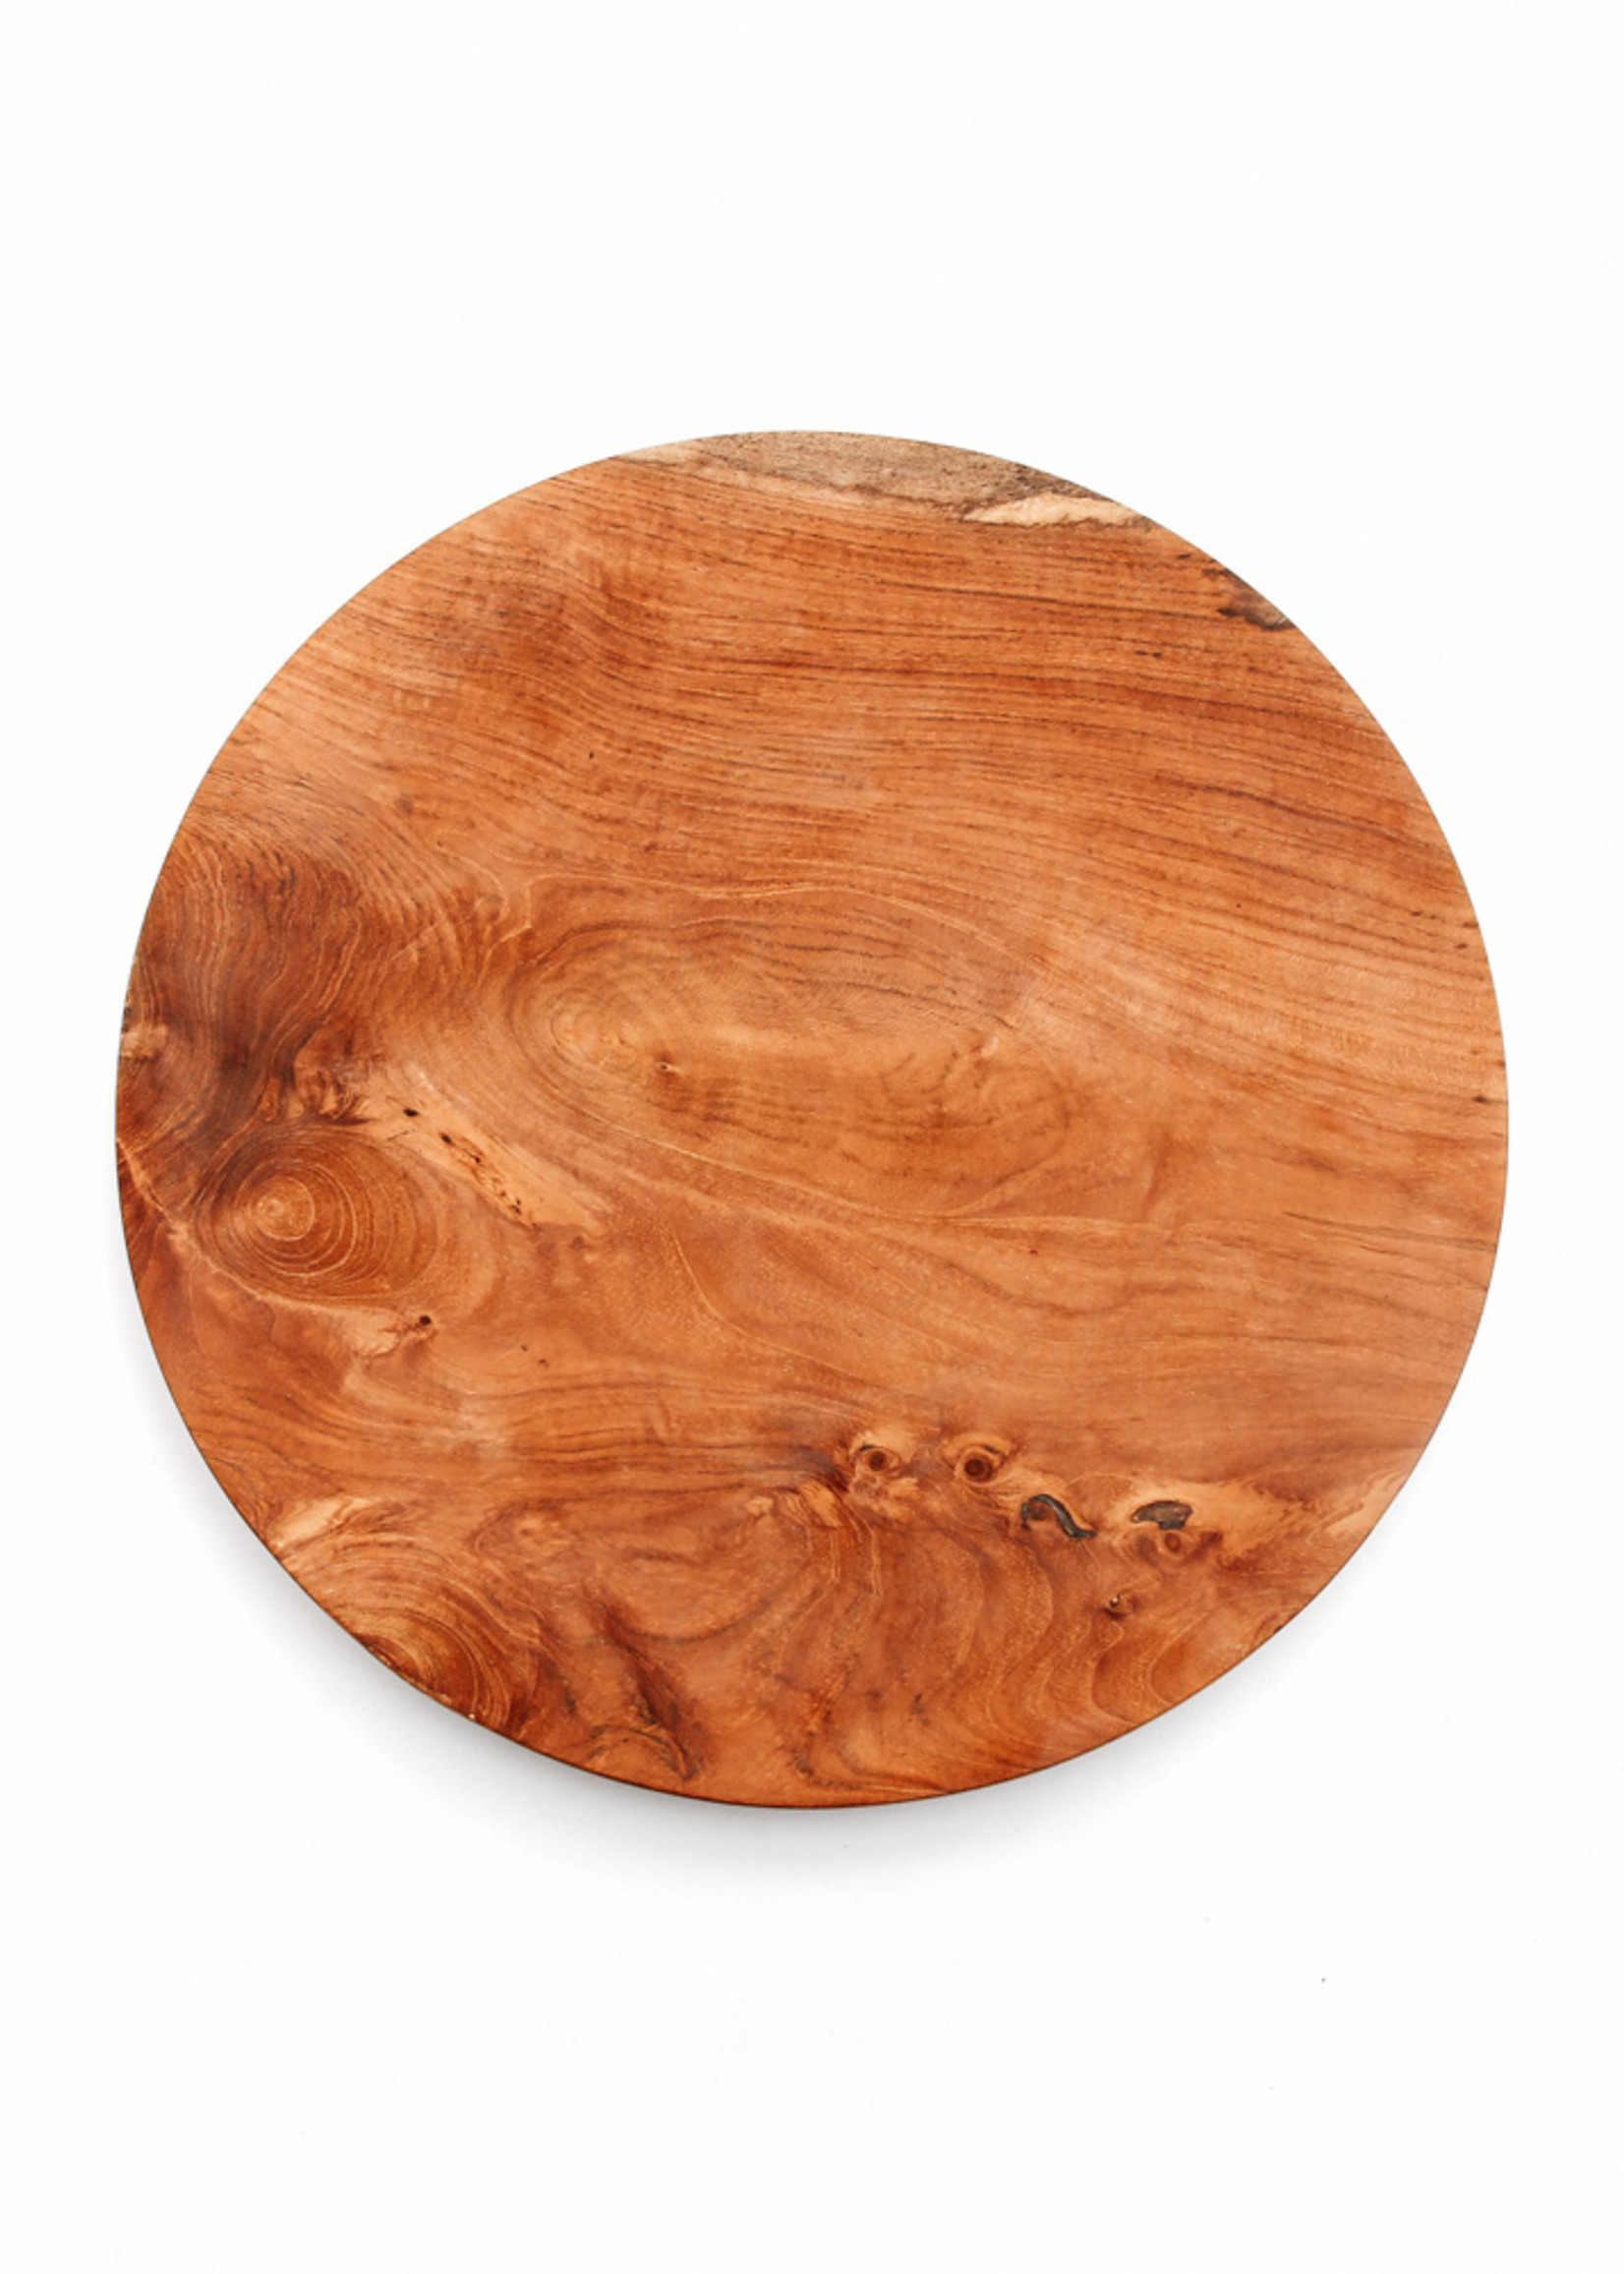 The Teak Root Round Plate - XS